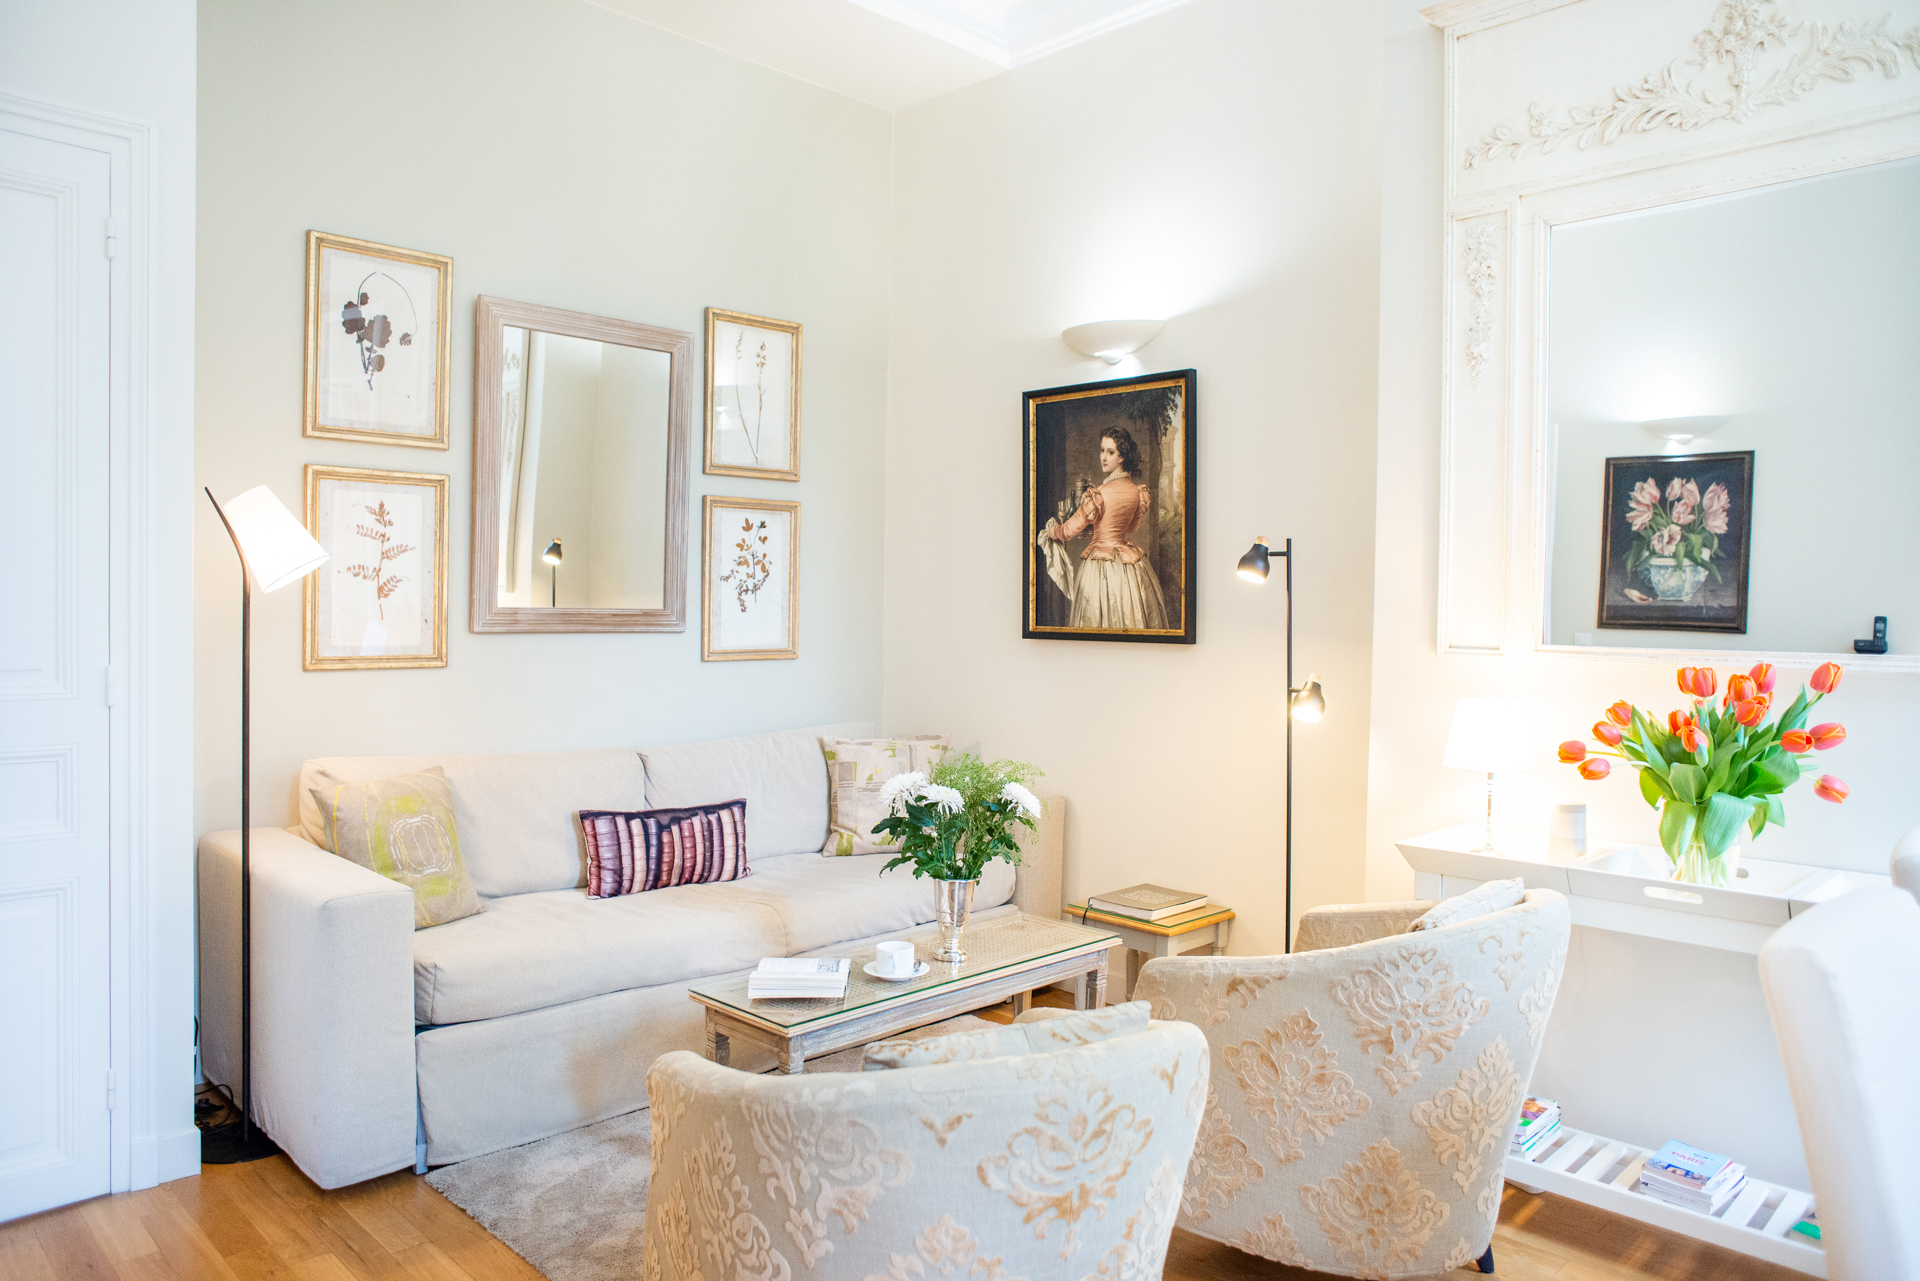 12-foot ceilings in the Corent apartment by Paris Perfect